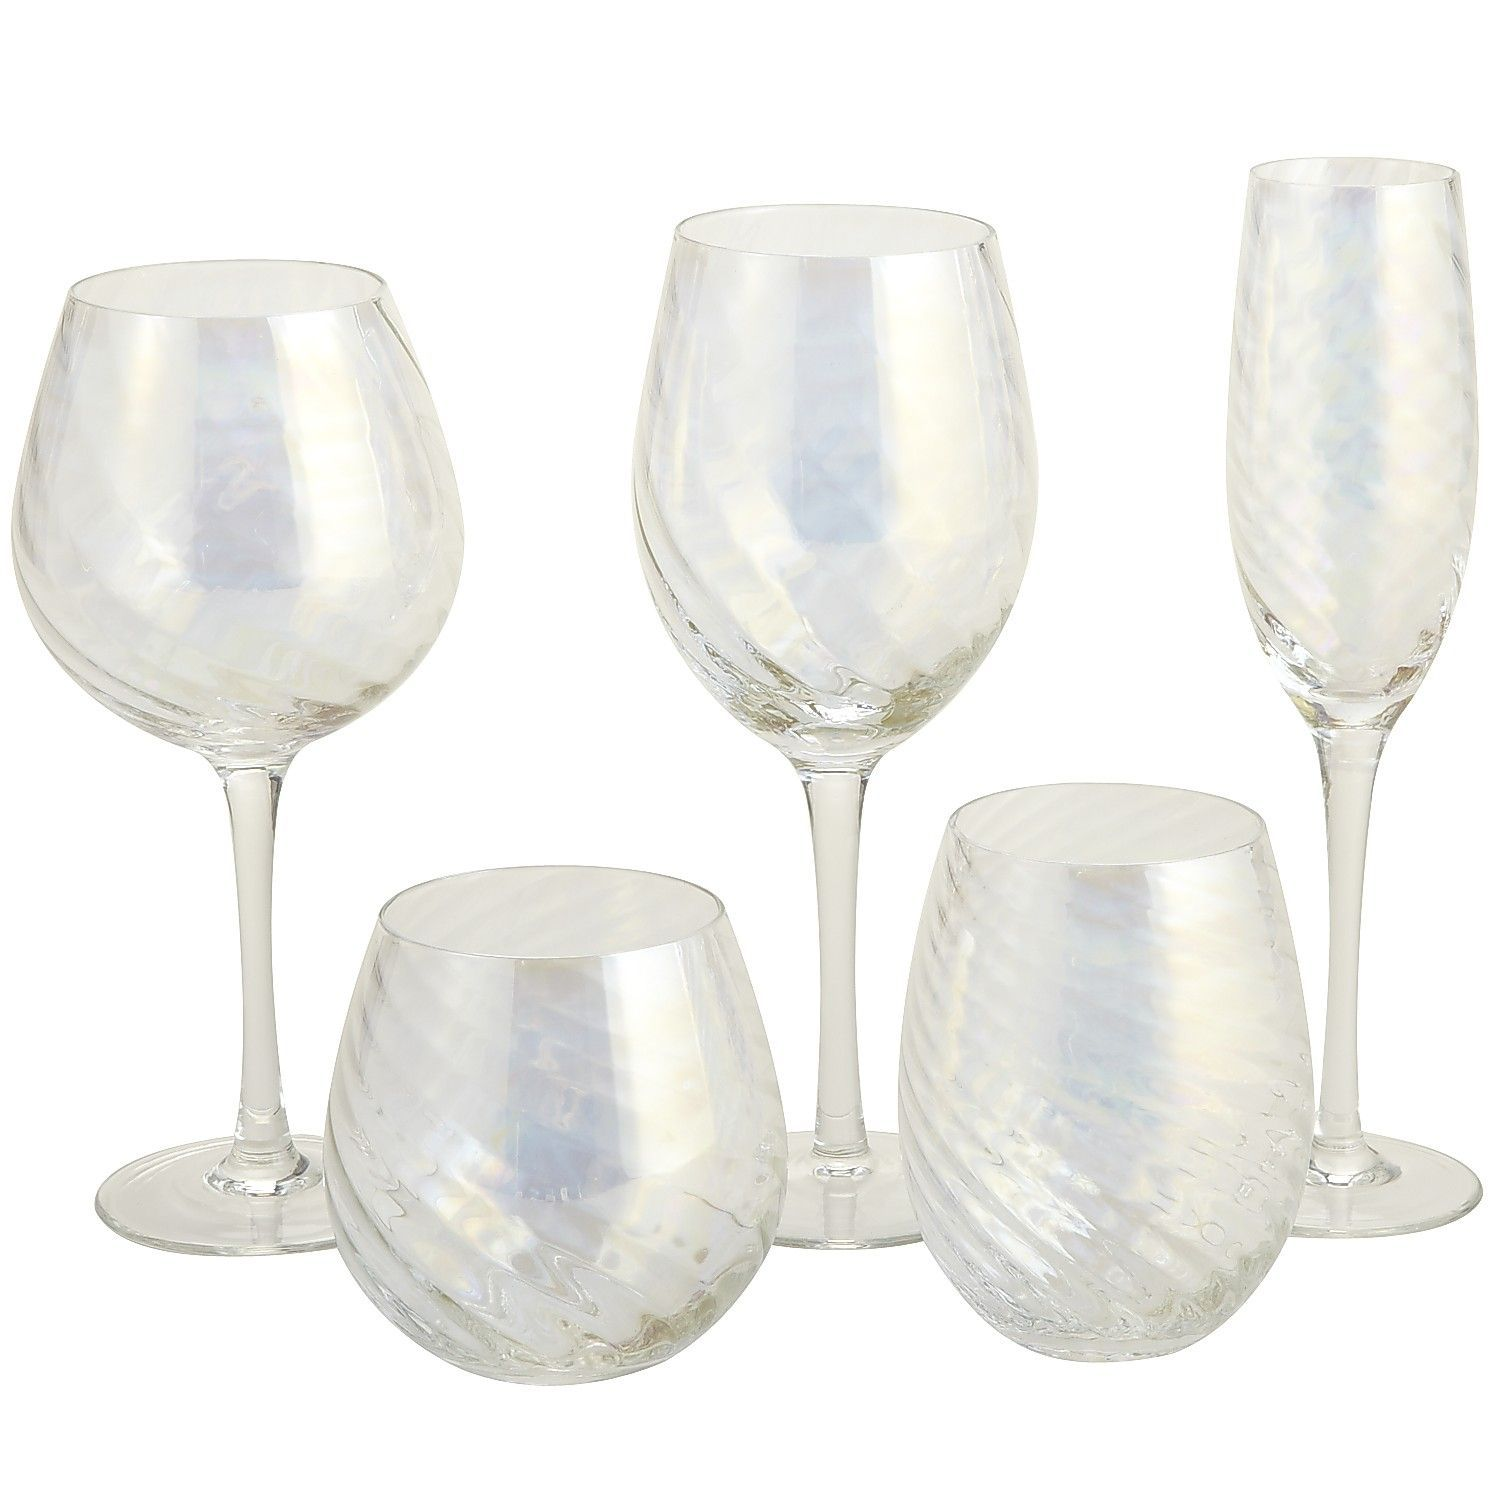 These glasses have a little more sophisticated look to